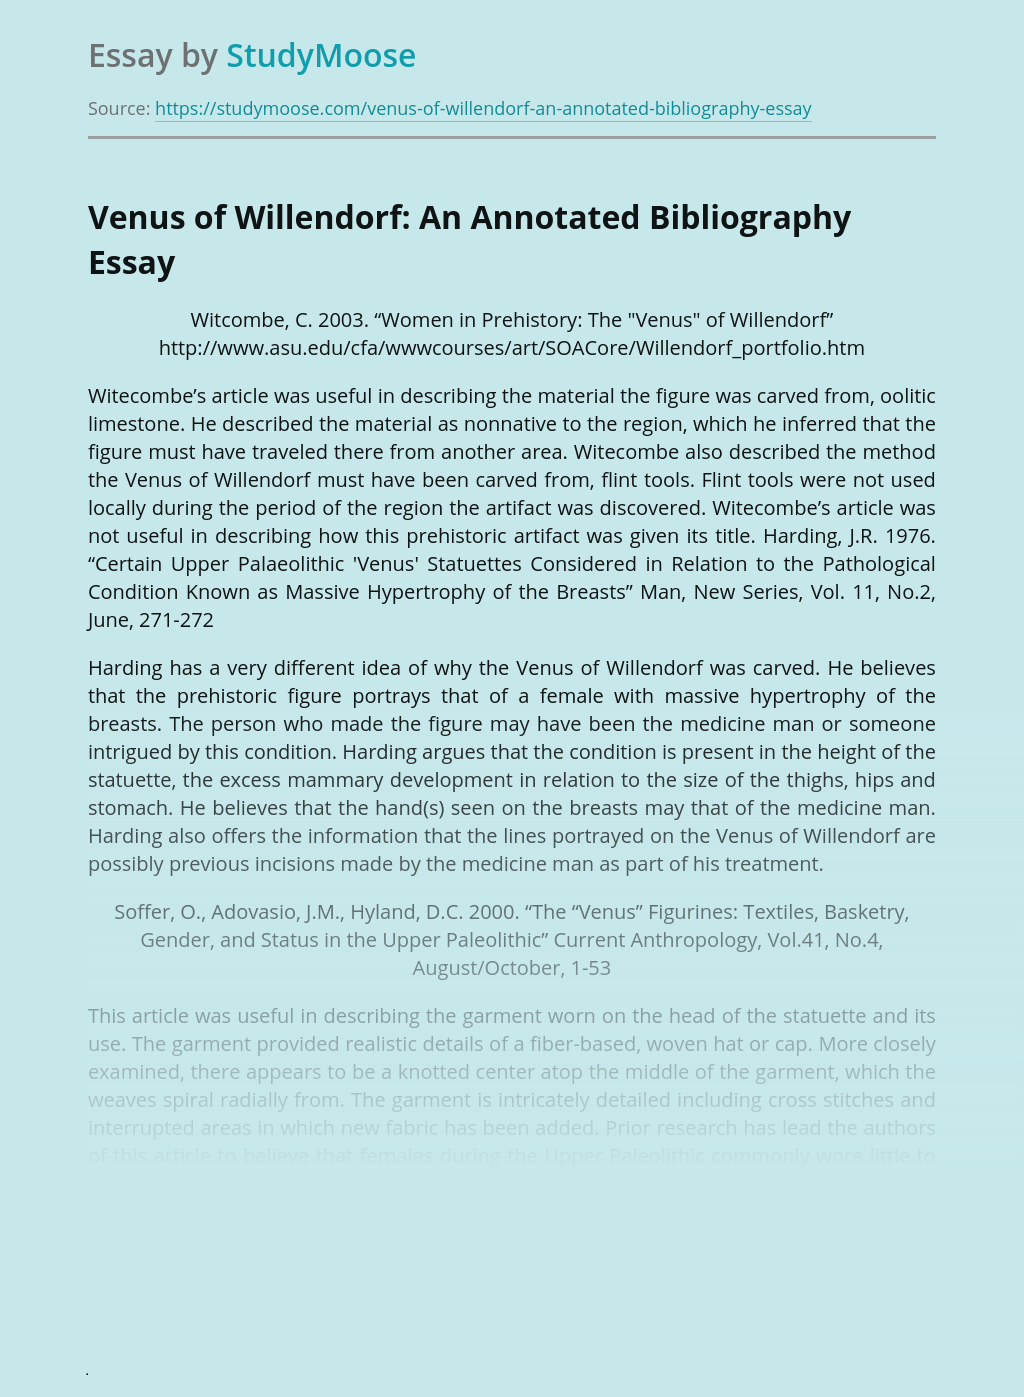 Venus of Willendorf: An Annotated Bibliography